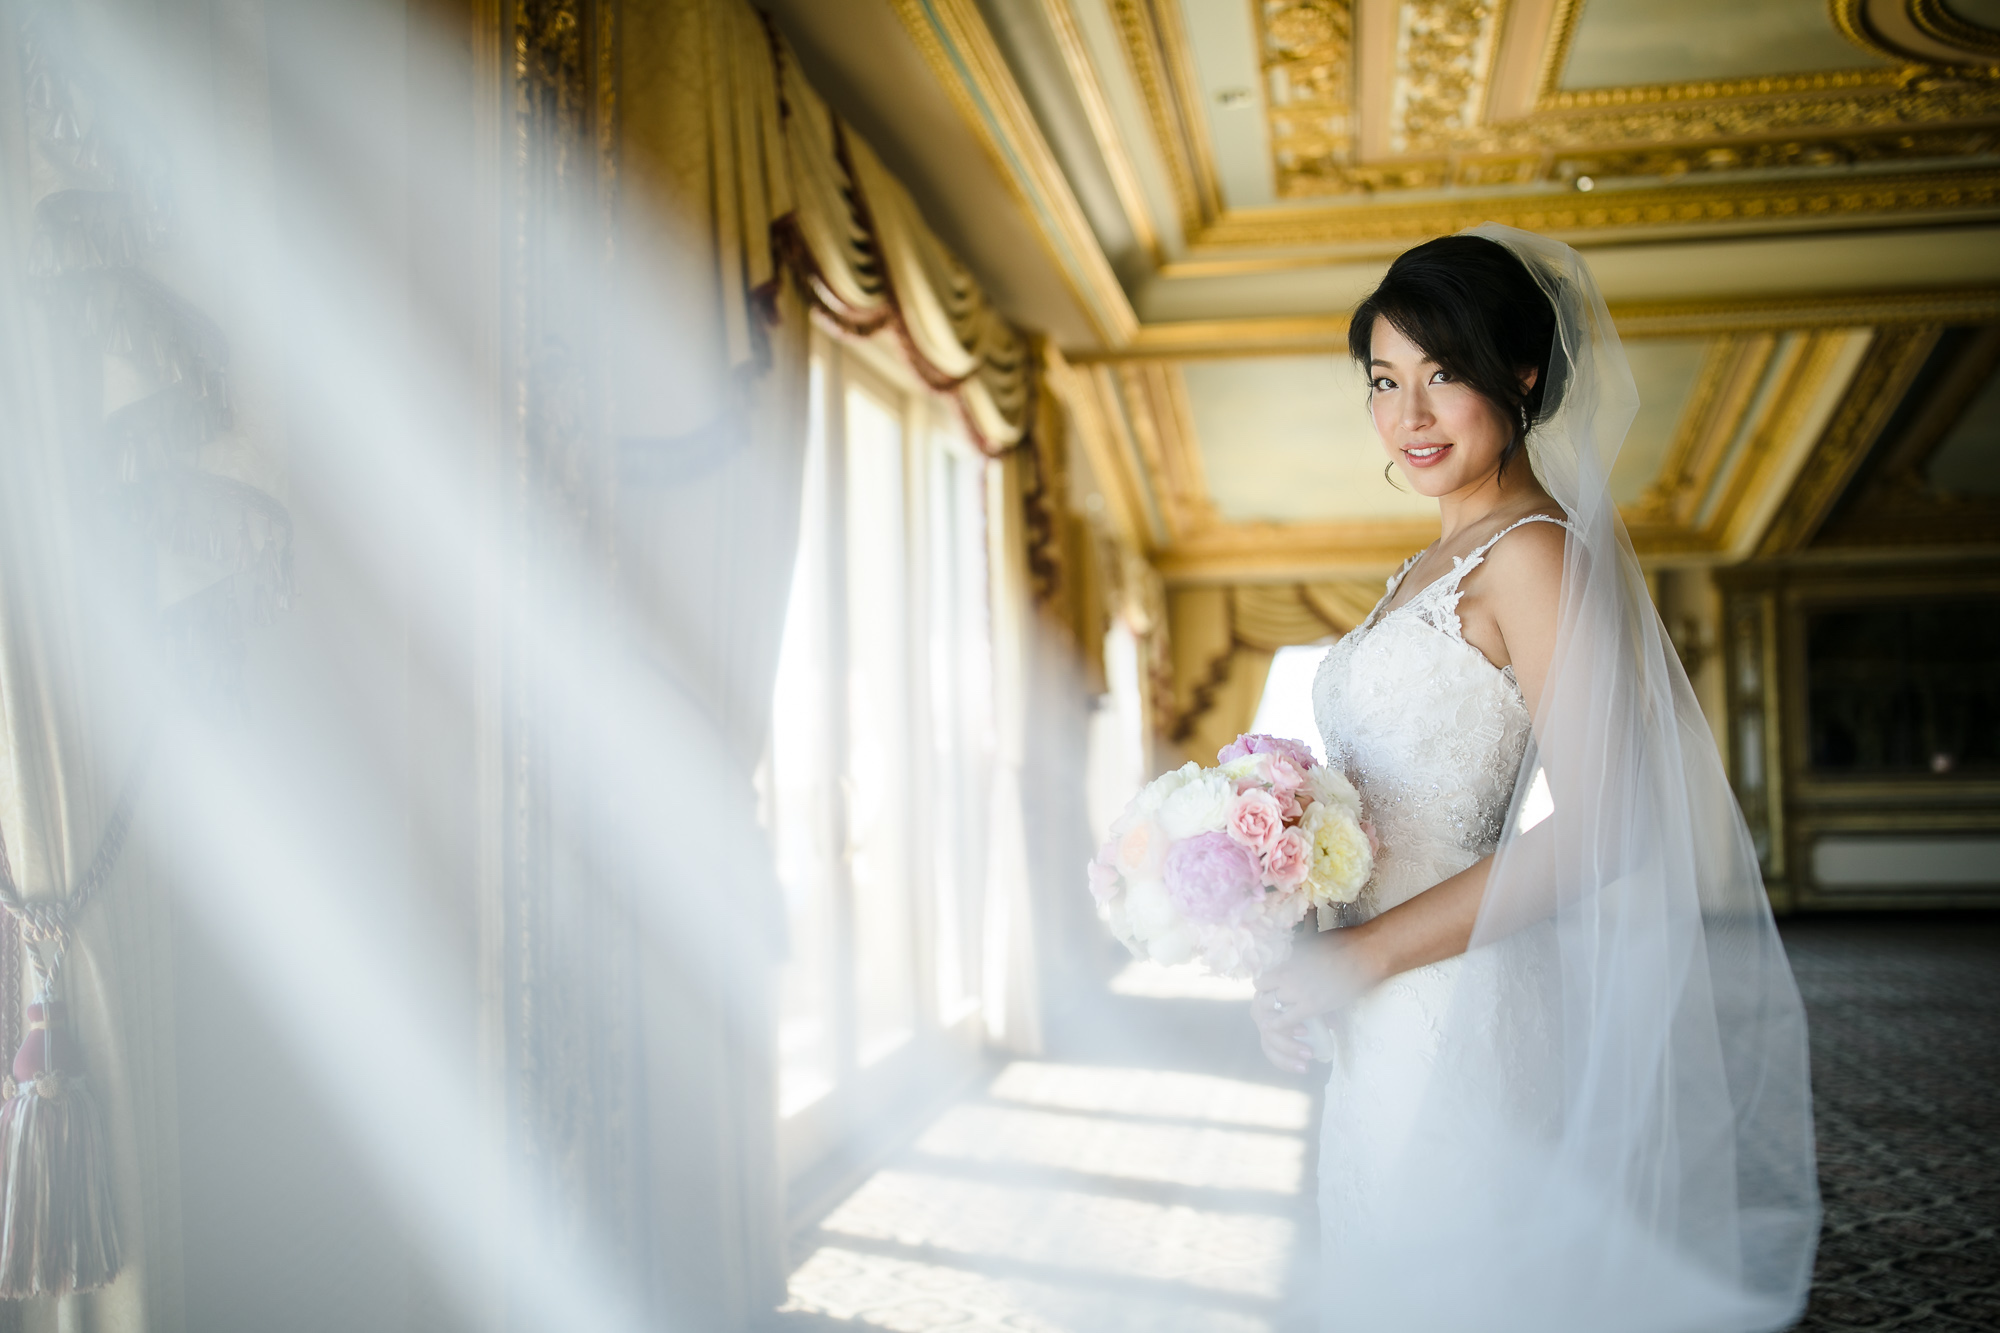 wedding-photo-editing-tips-feature-edit